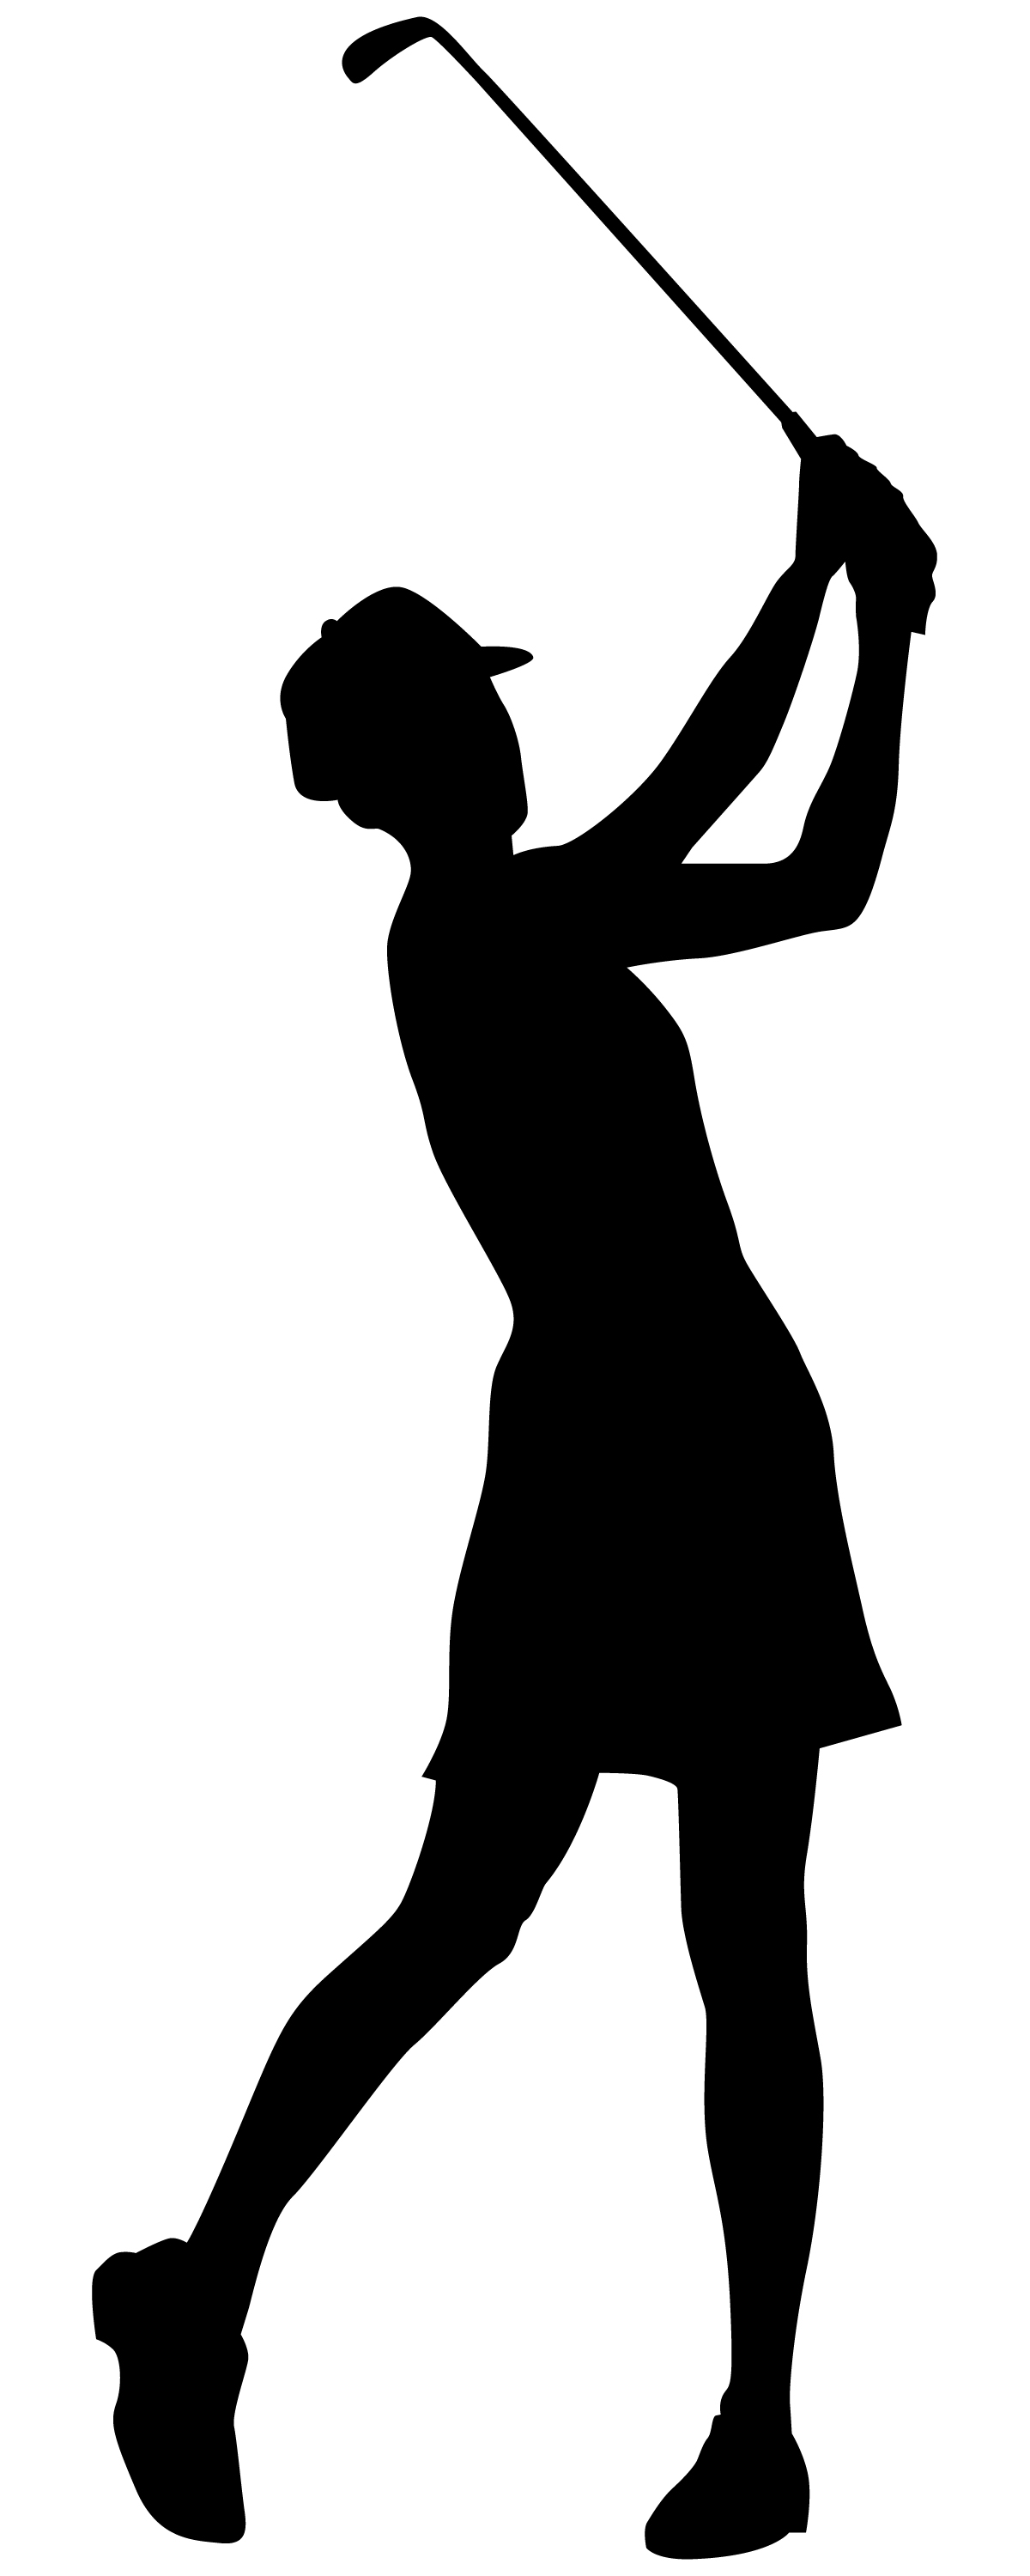 Free Female Golfer Cliparts, Download Free Clip Art, Free Clip Art.